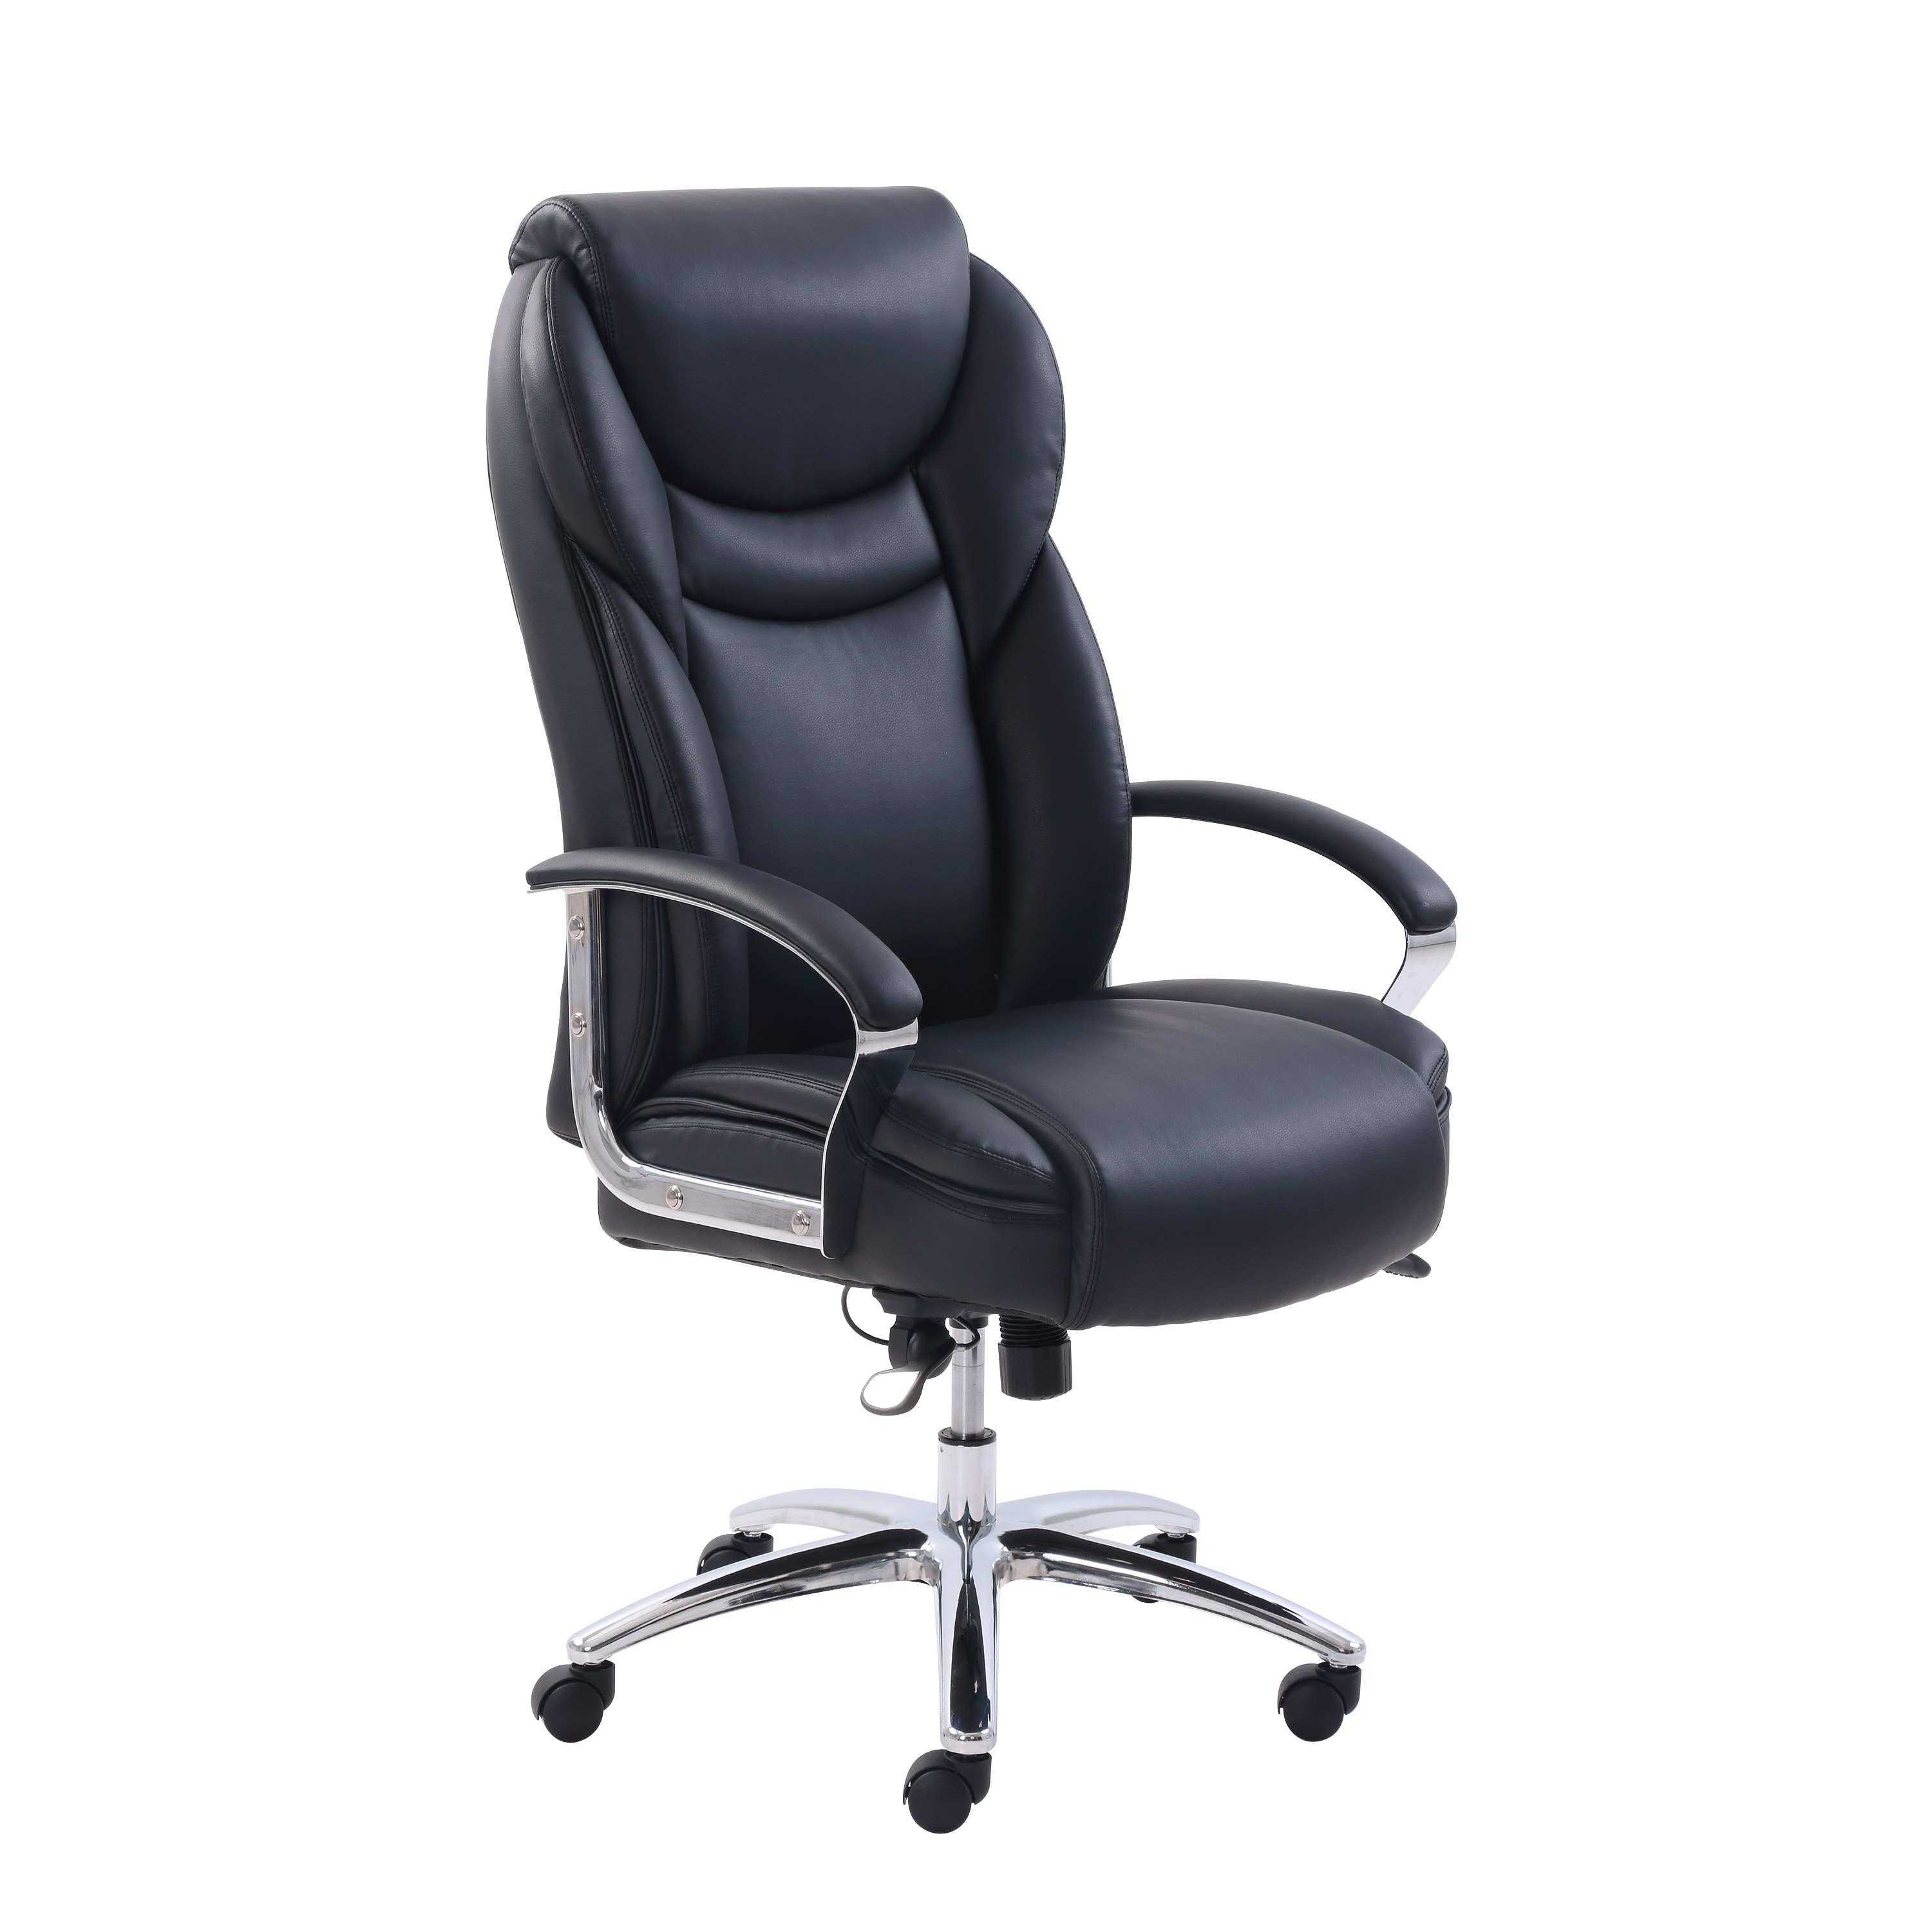 big and tall office chairs camping with table serta chair memory foam adjustable multiple colors